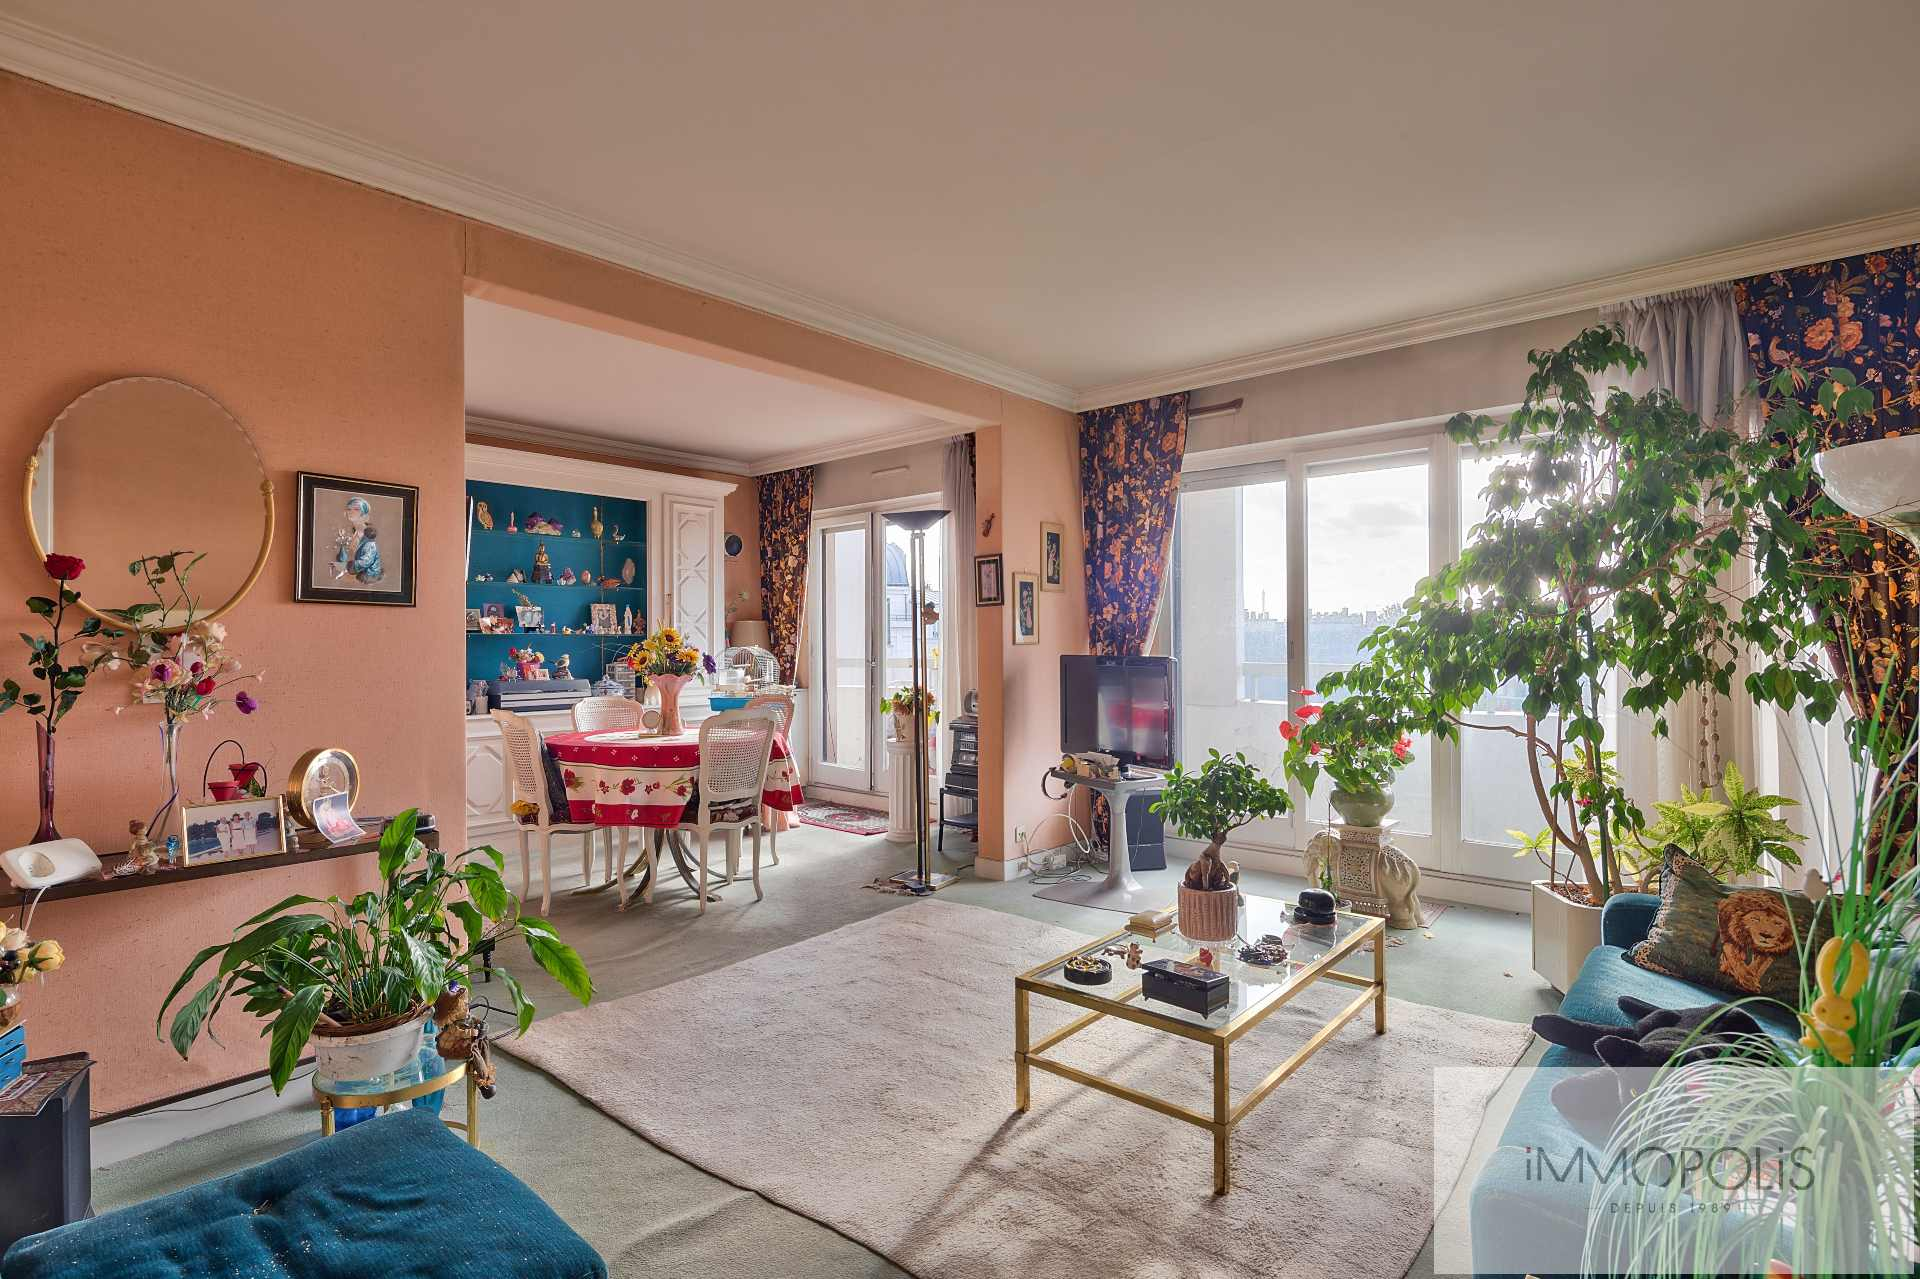 4 rooms with balcony terrace and view on gardens and the Eiffel Tower: sold occupied by usufruitière 90 years 1